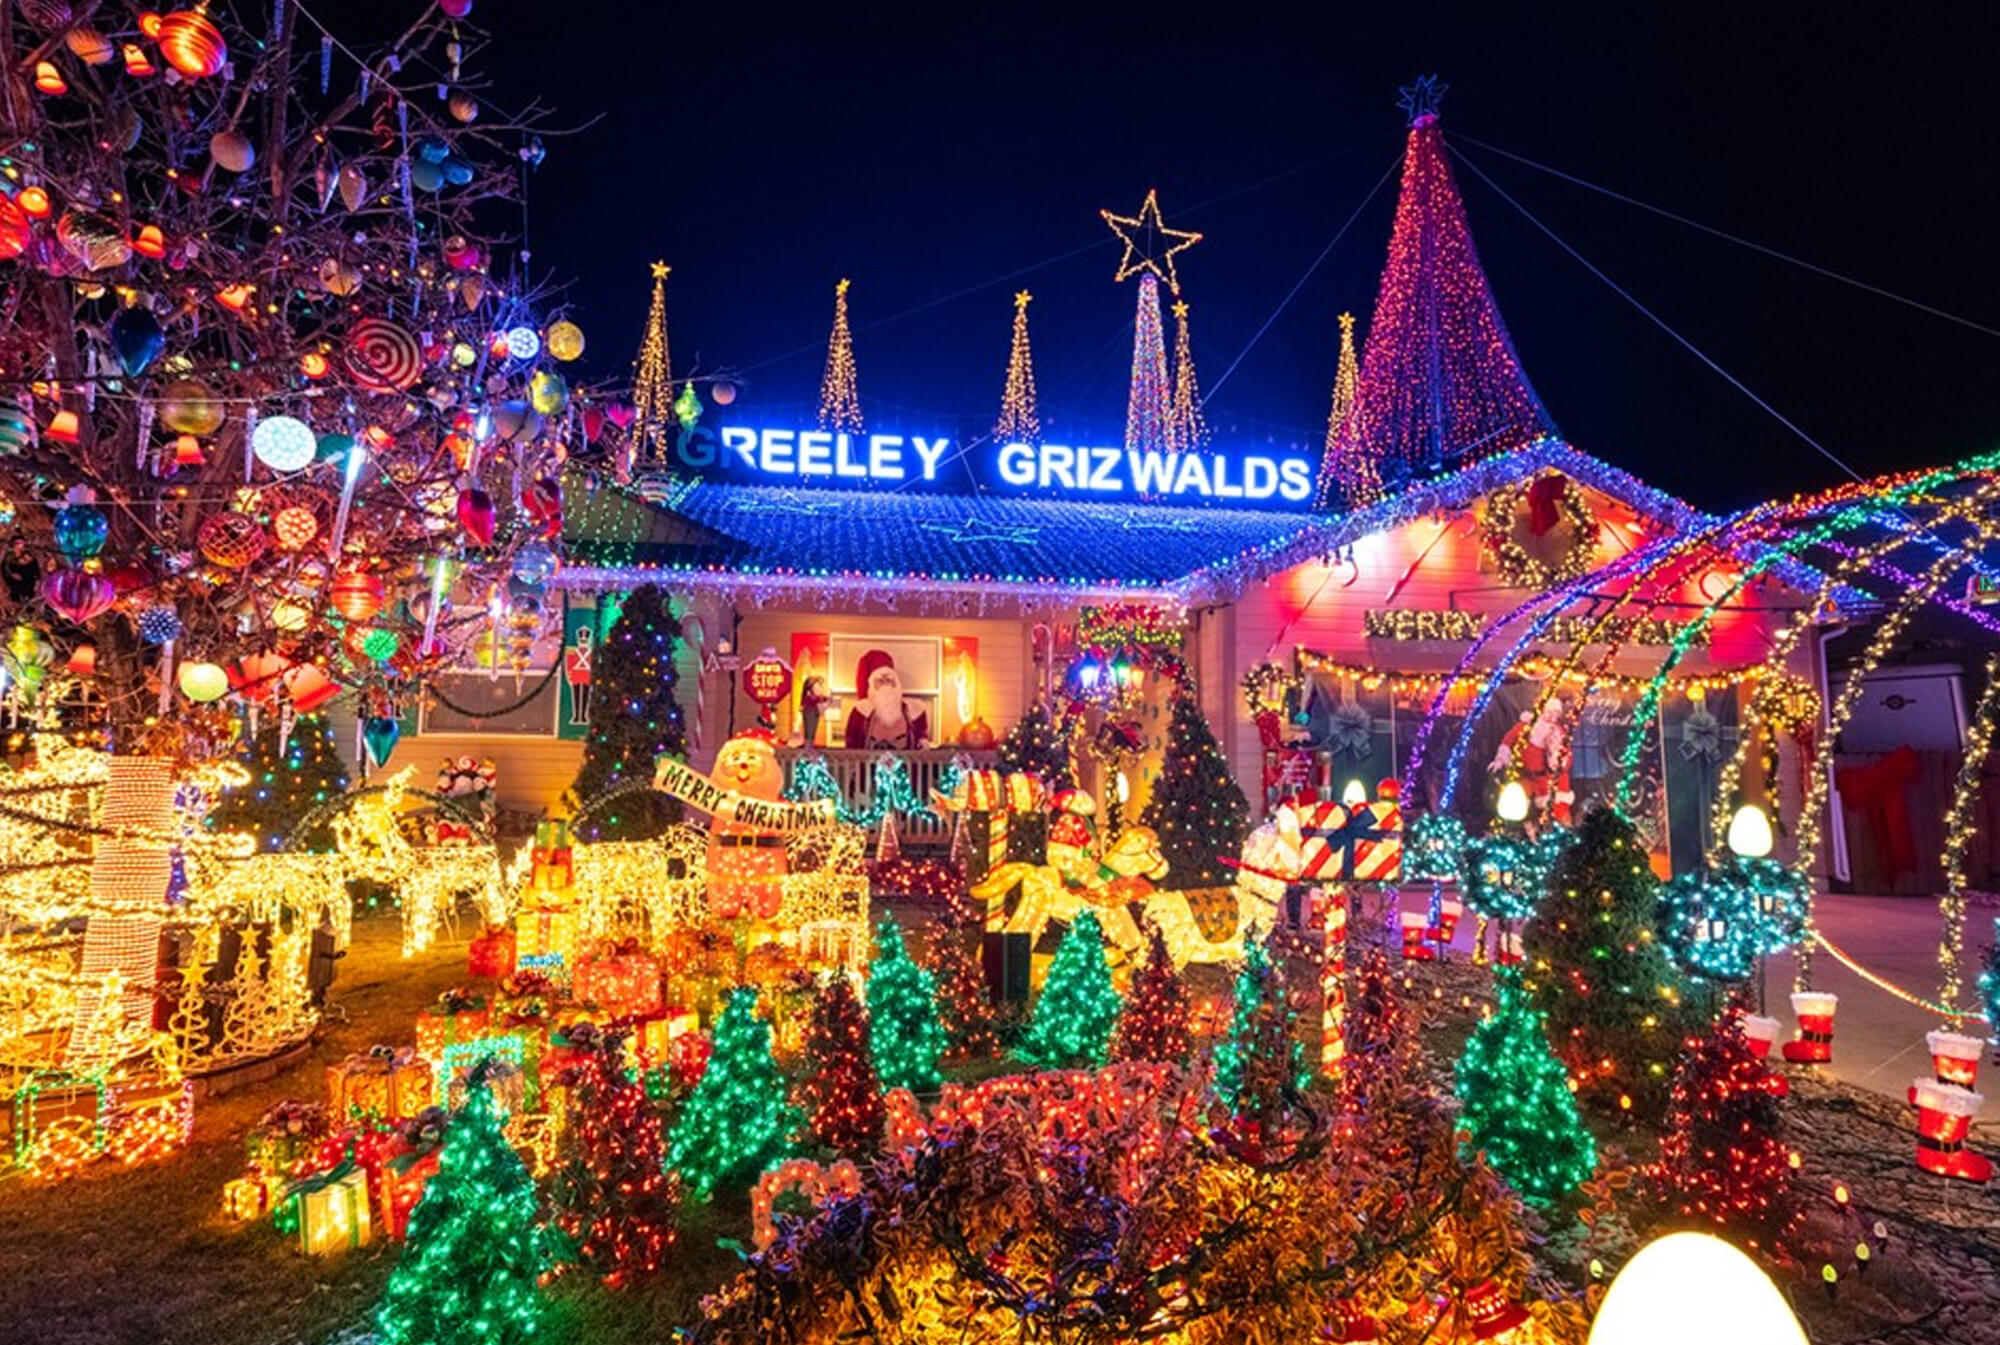 The Greeley Grizwalds Will Get You in the Holiday Spirit